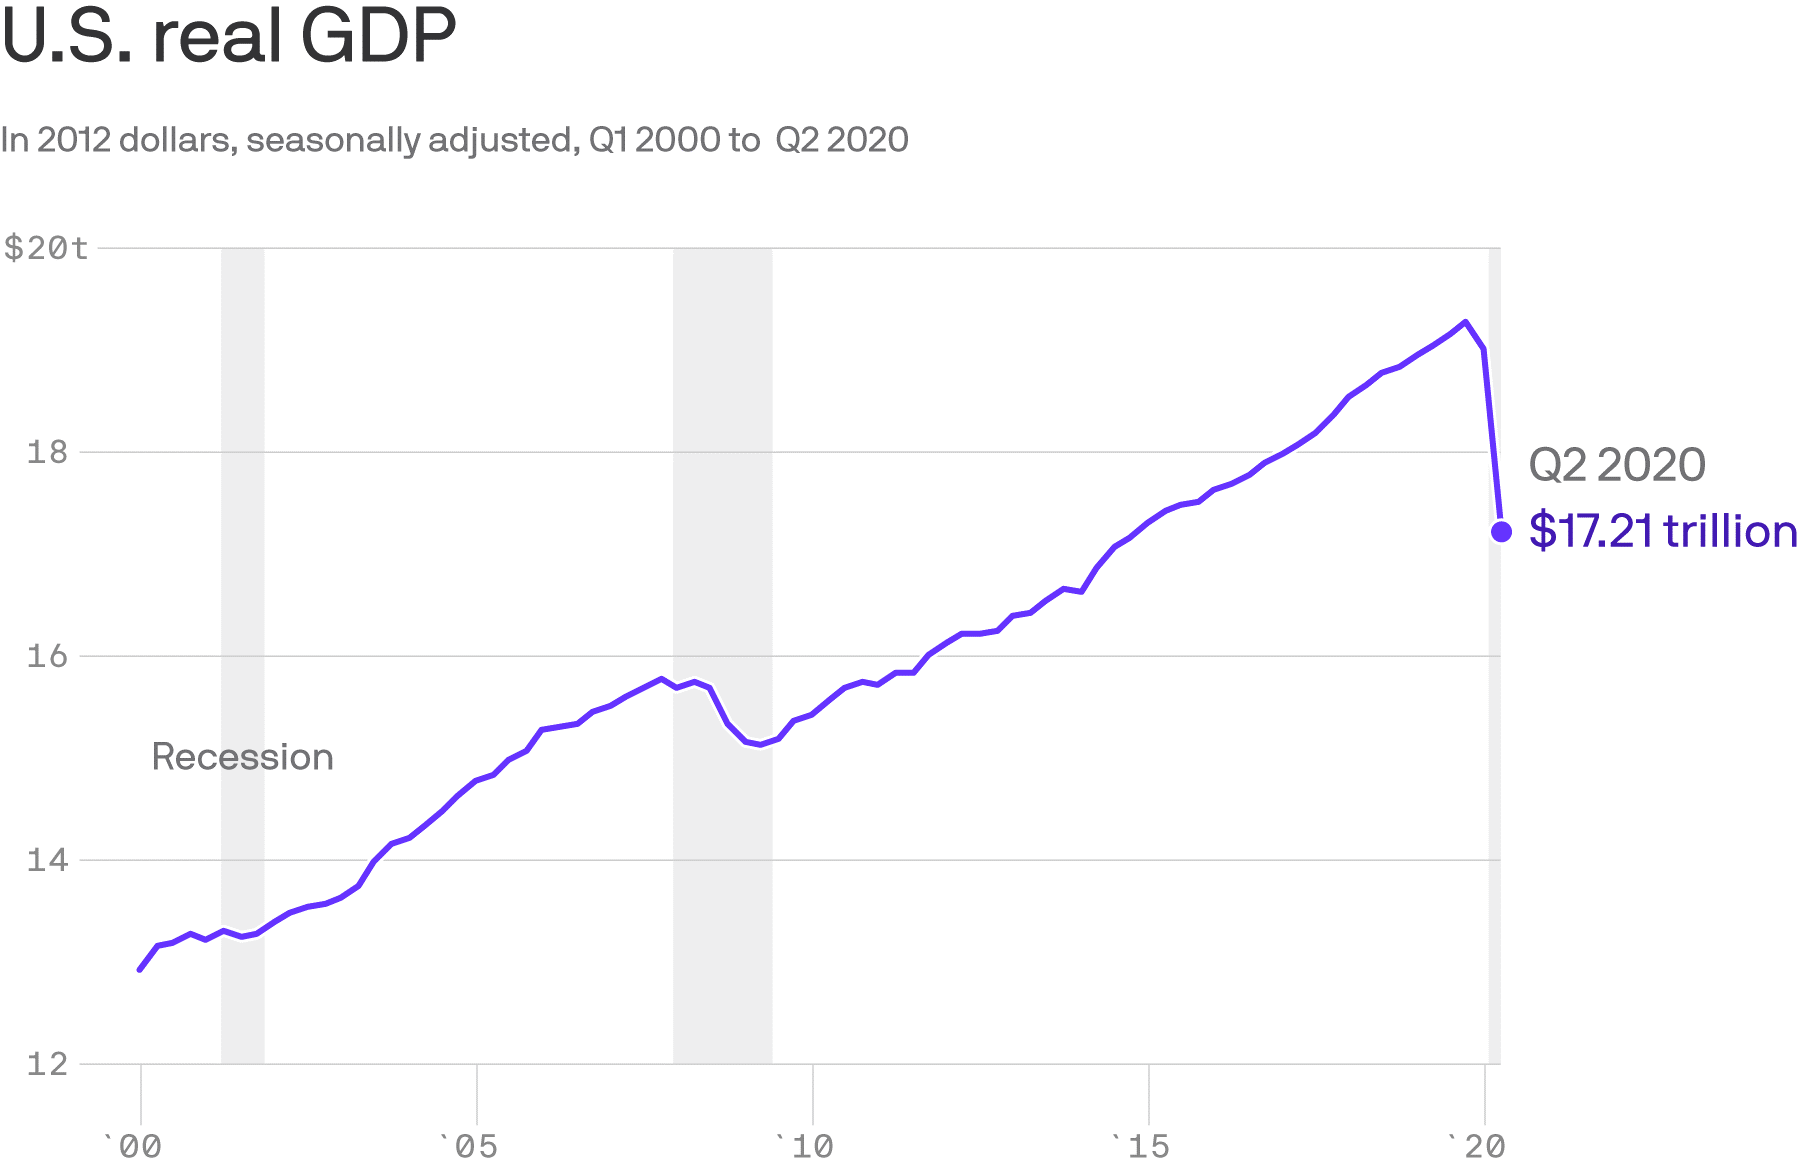 2Q20 Real GDP